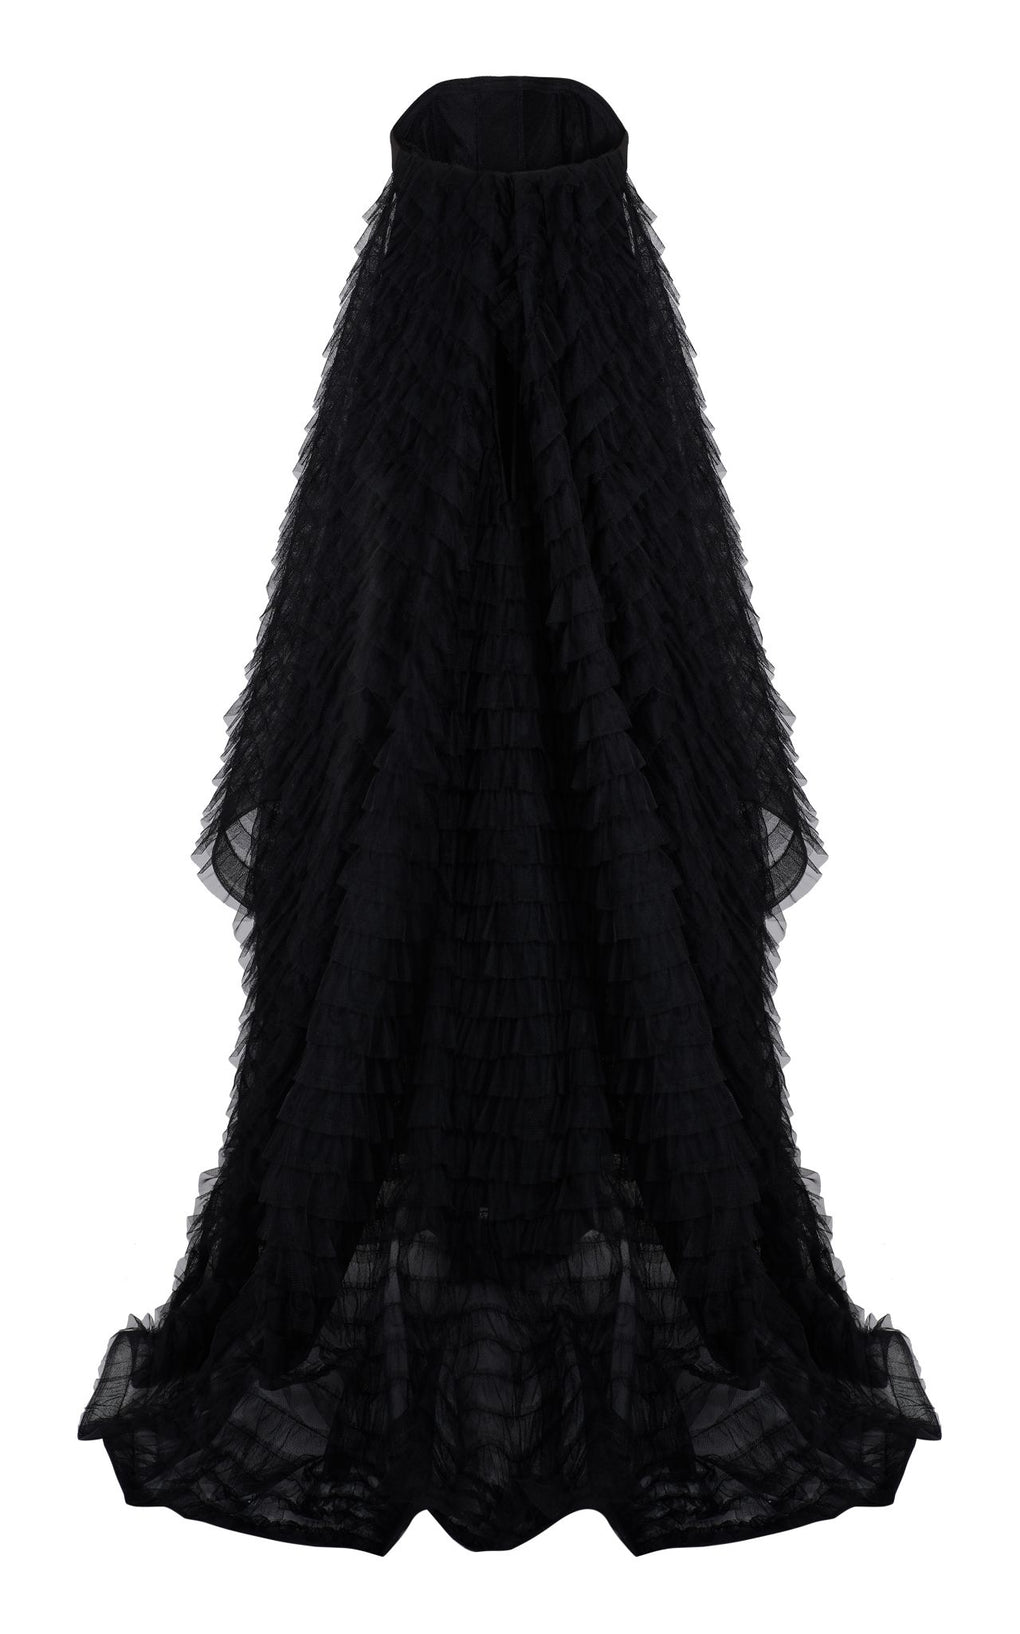 Black skinny gown with tulle train